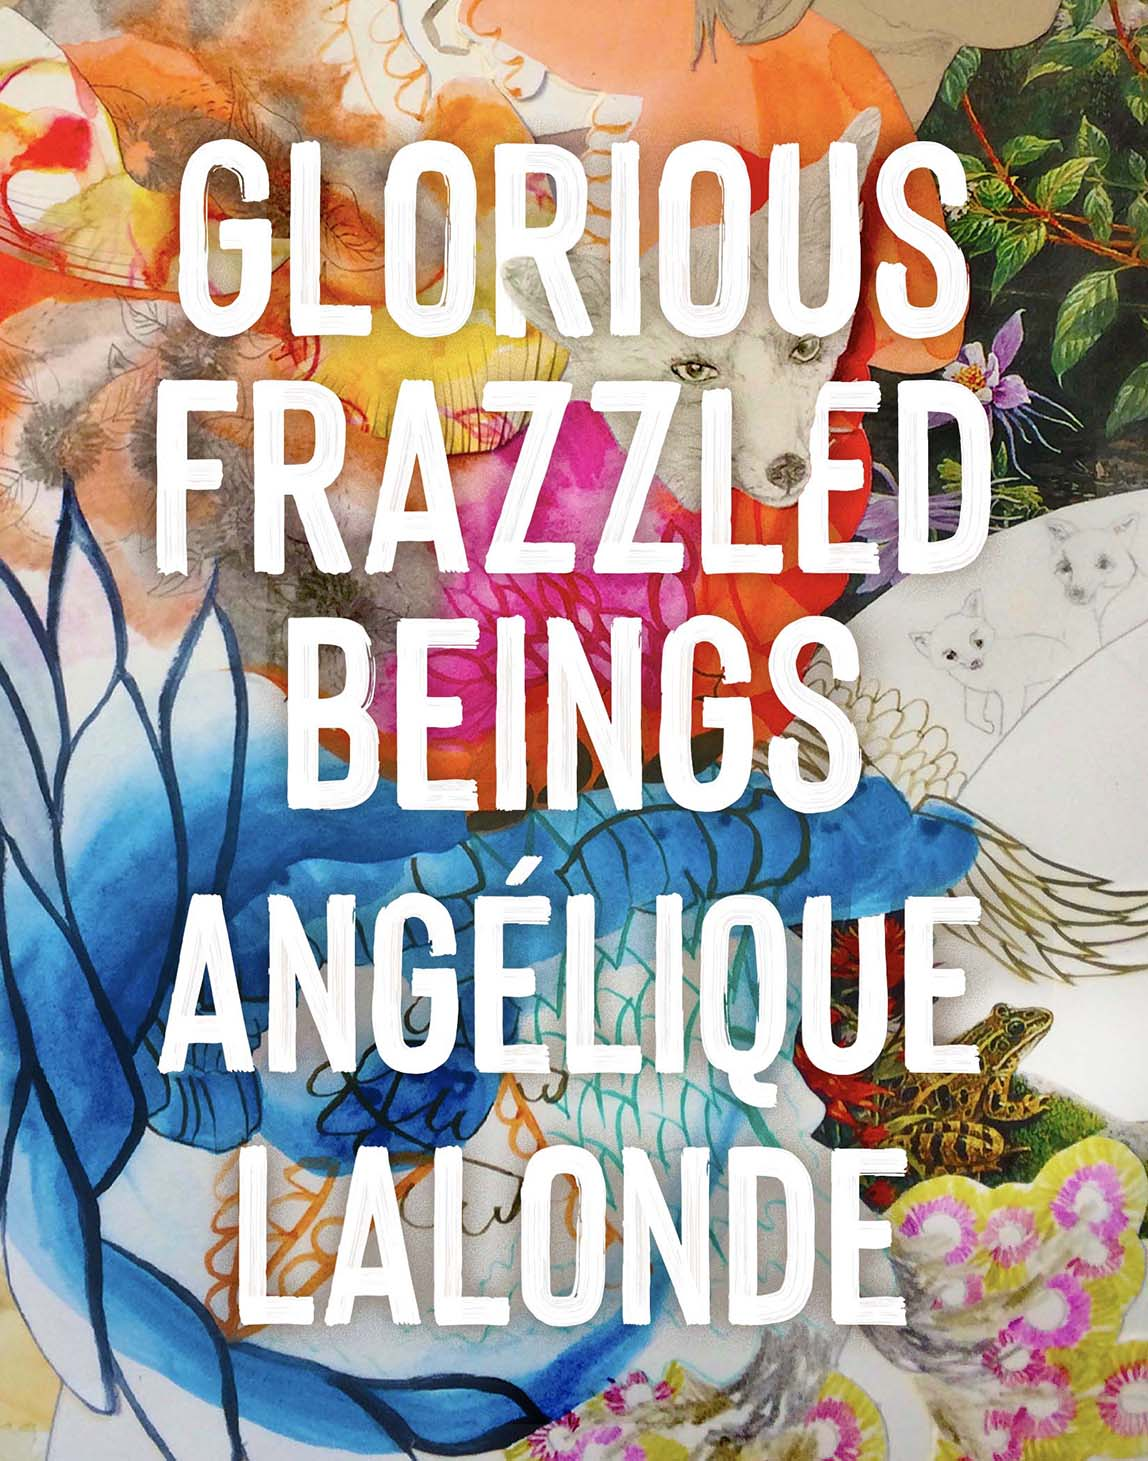 Glorious Frazzled Beings by Angélique Lalonde